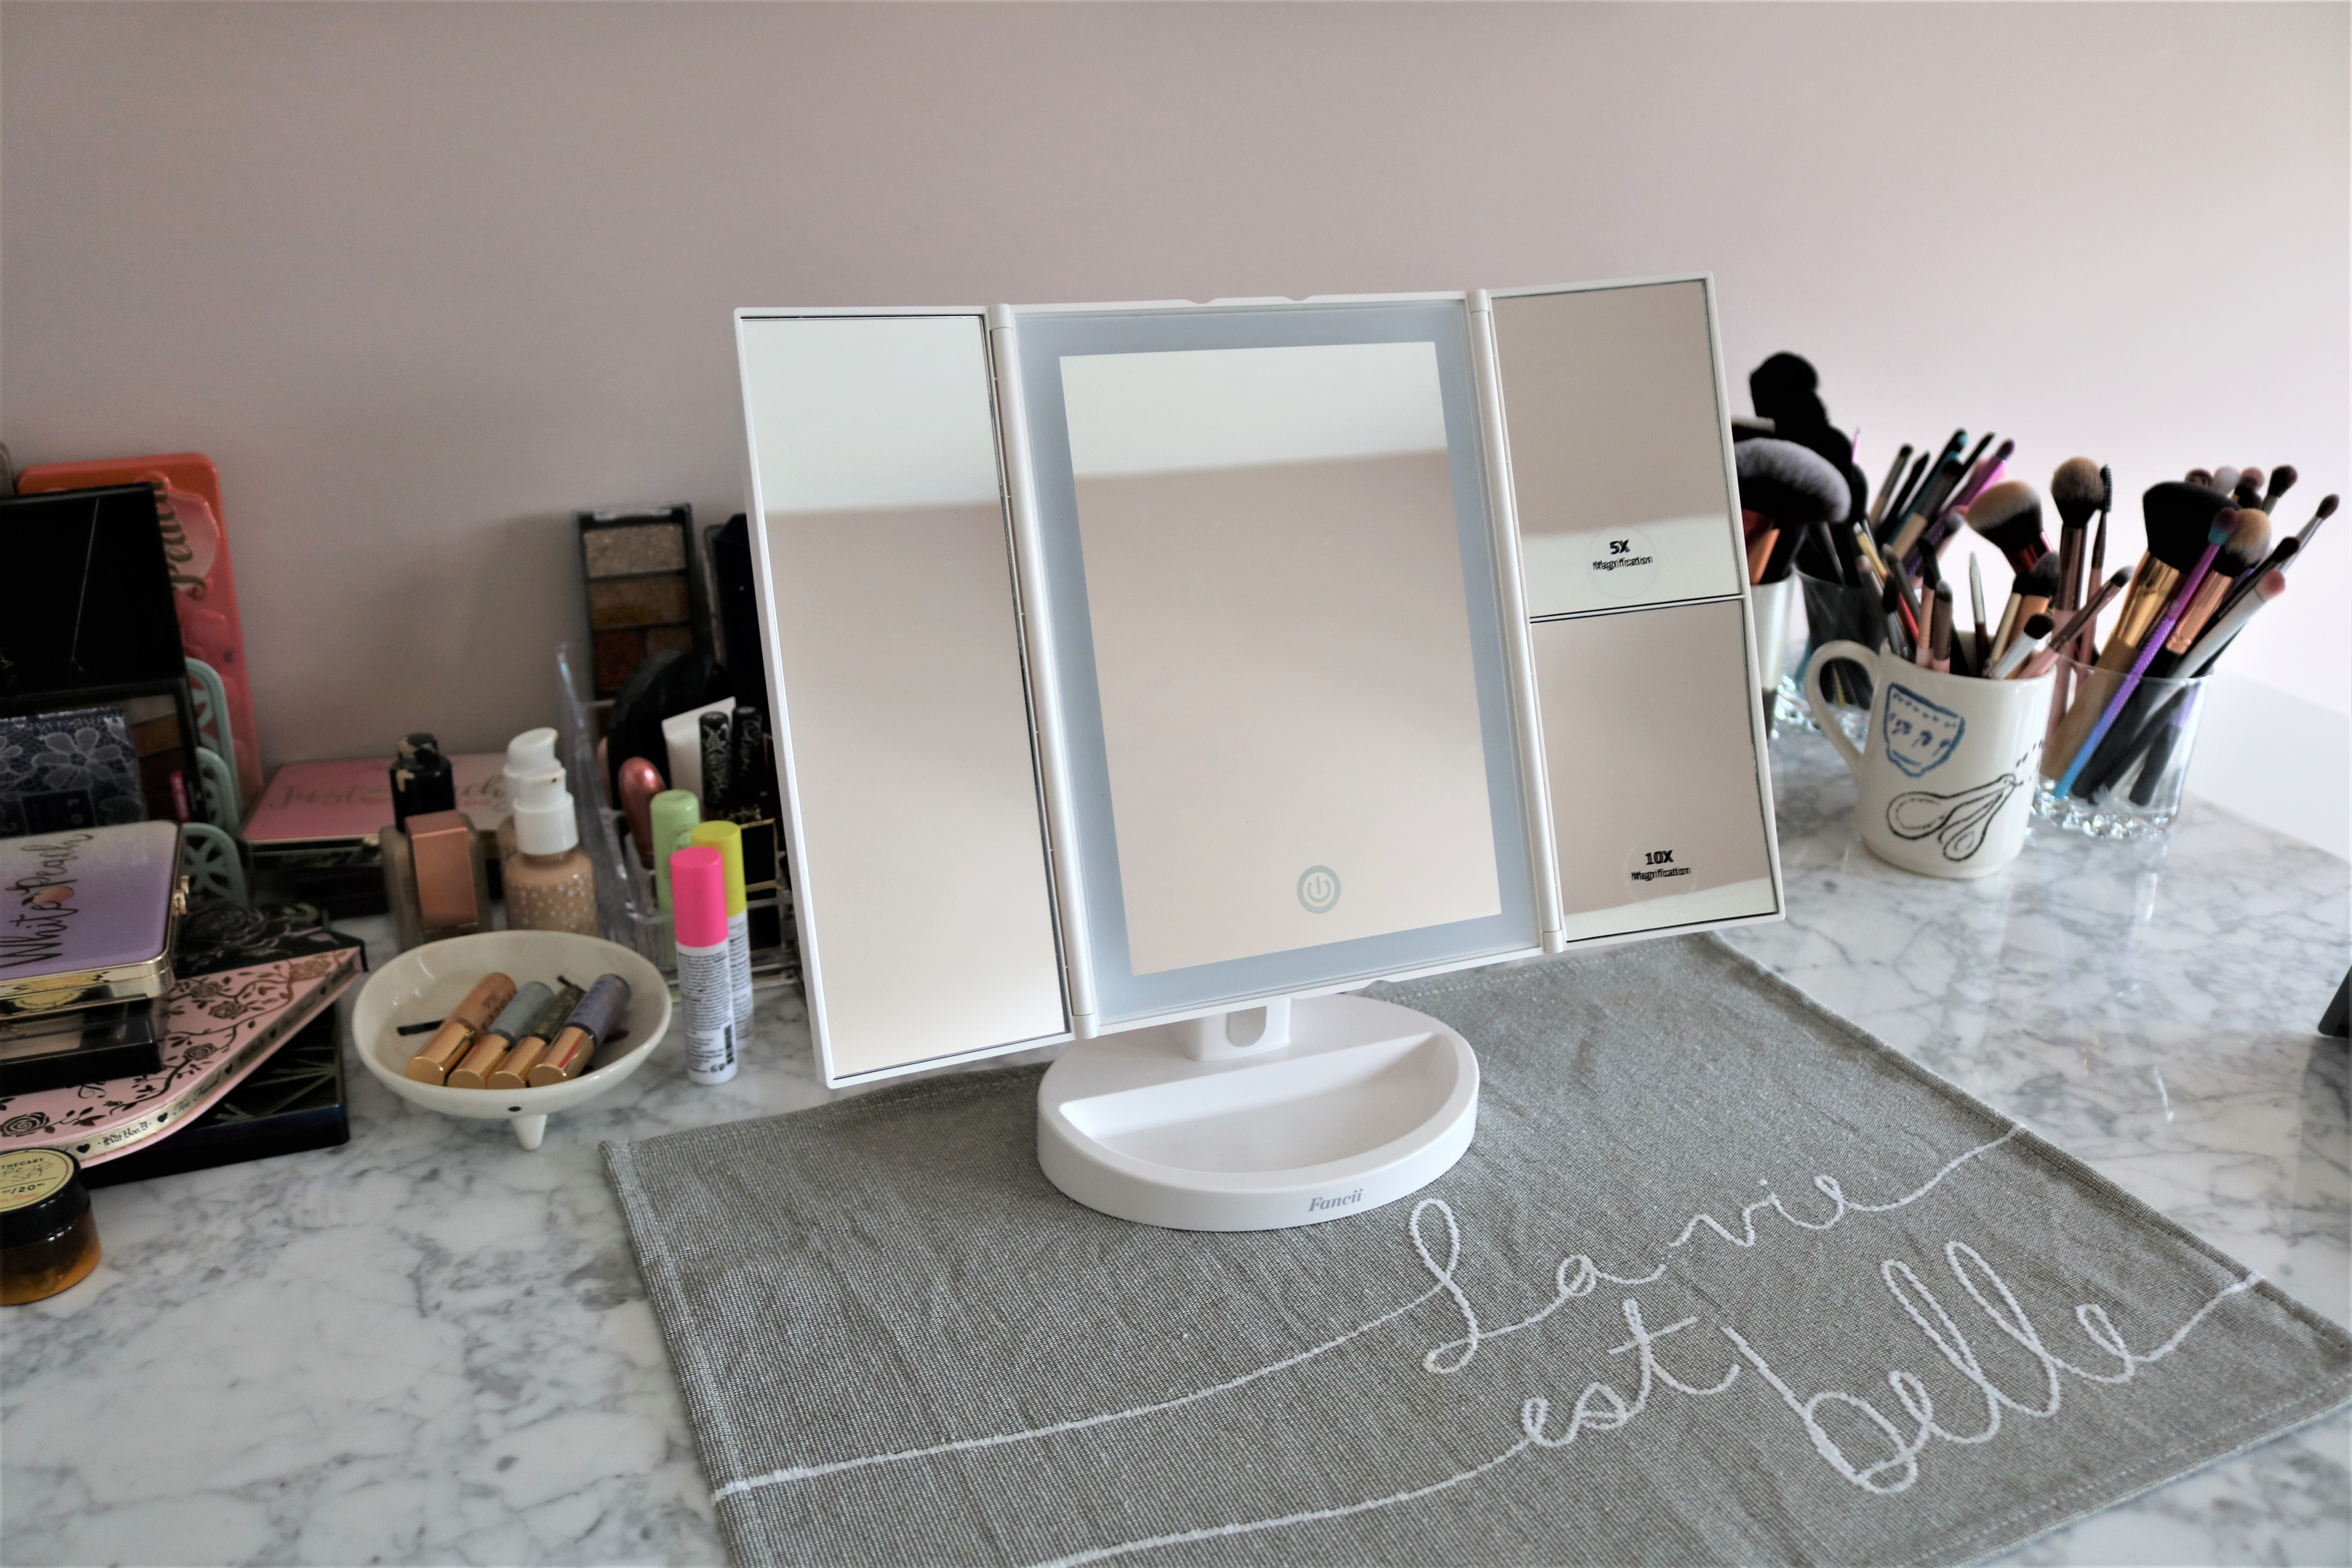 new product 19ae4 2a563 Review: Fancii Tria Tri-Fold Vanity Mirror - I'm Not a ...